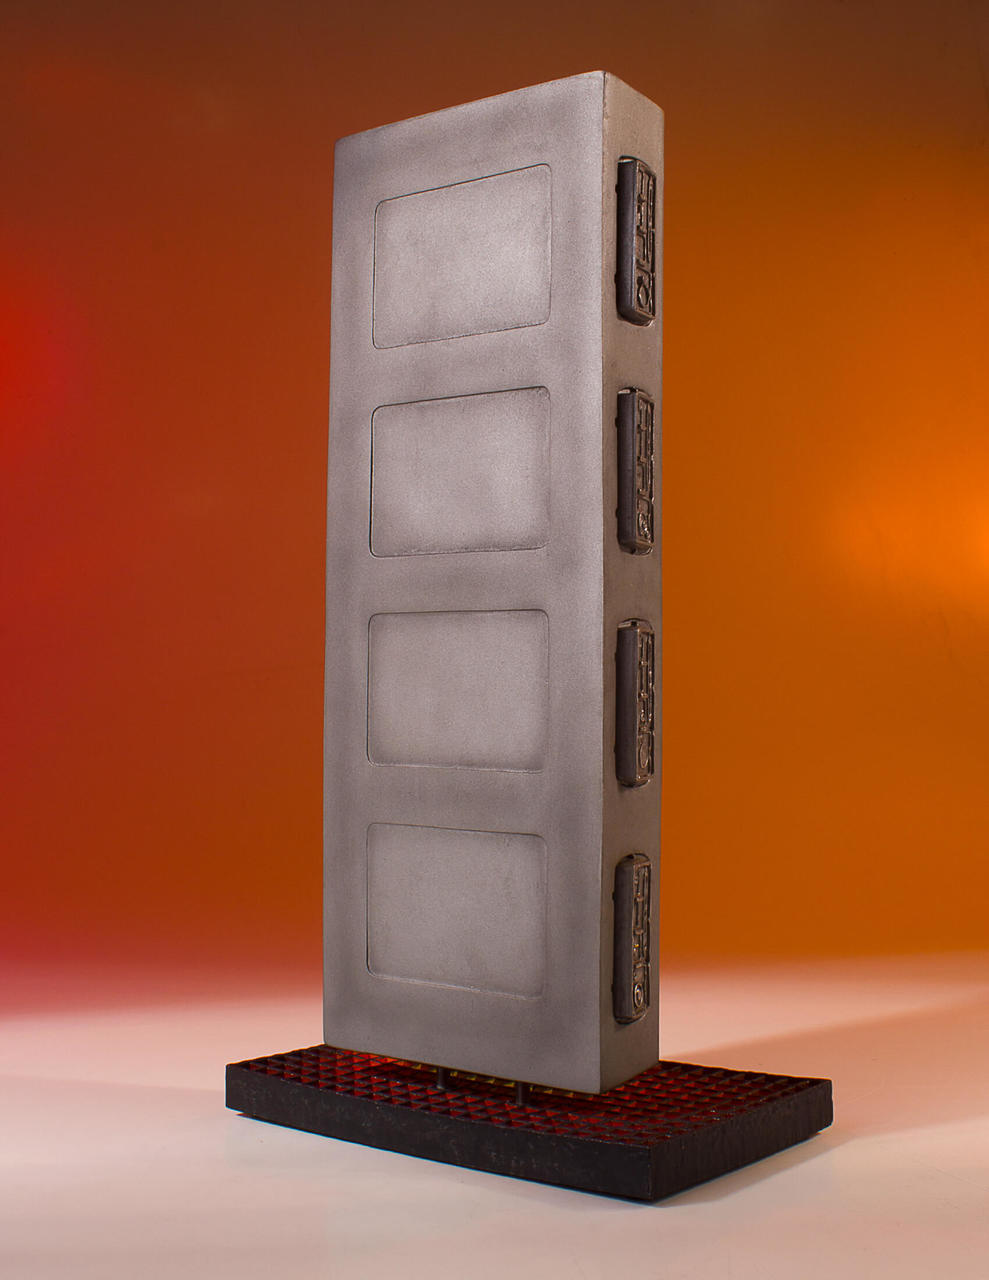 TESB Han Solo In Carbonite Collectors Gallery Statue 4